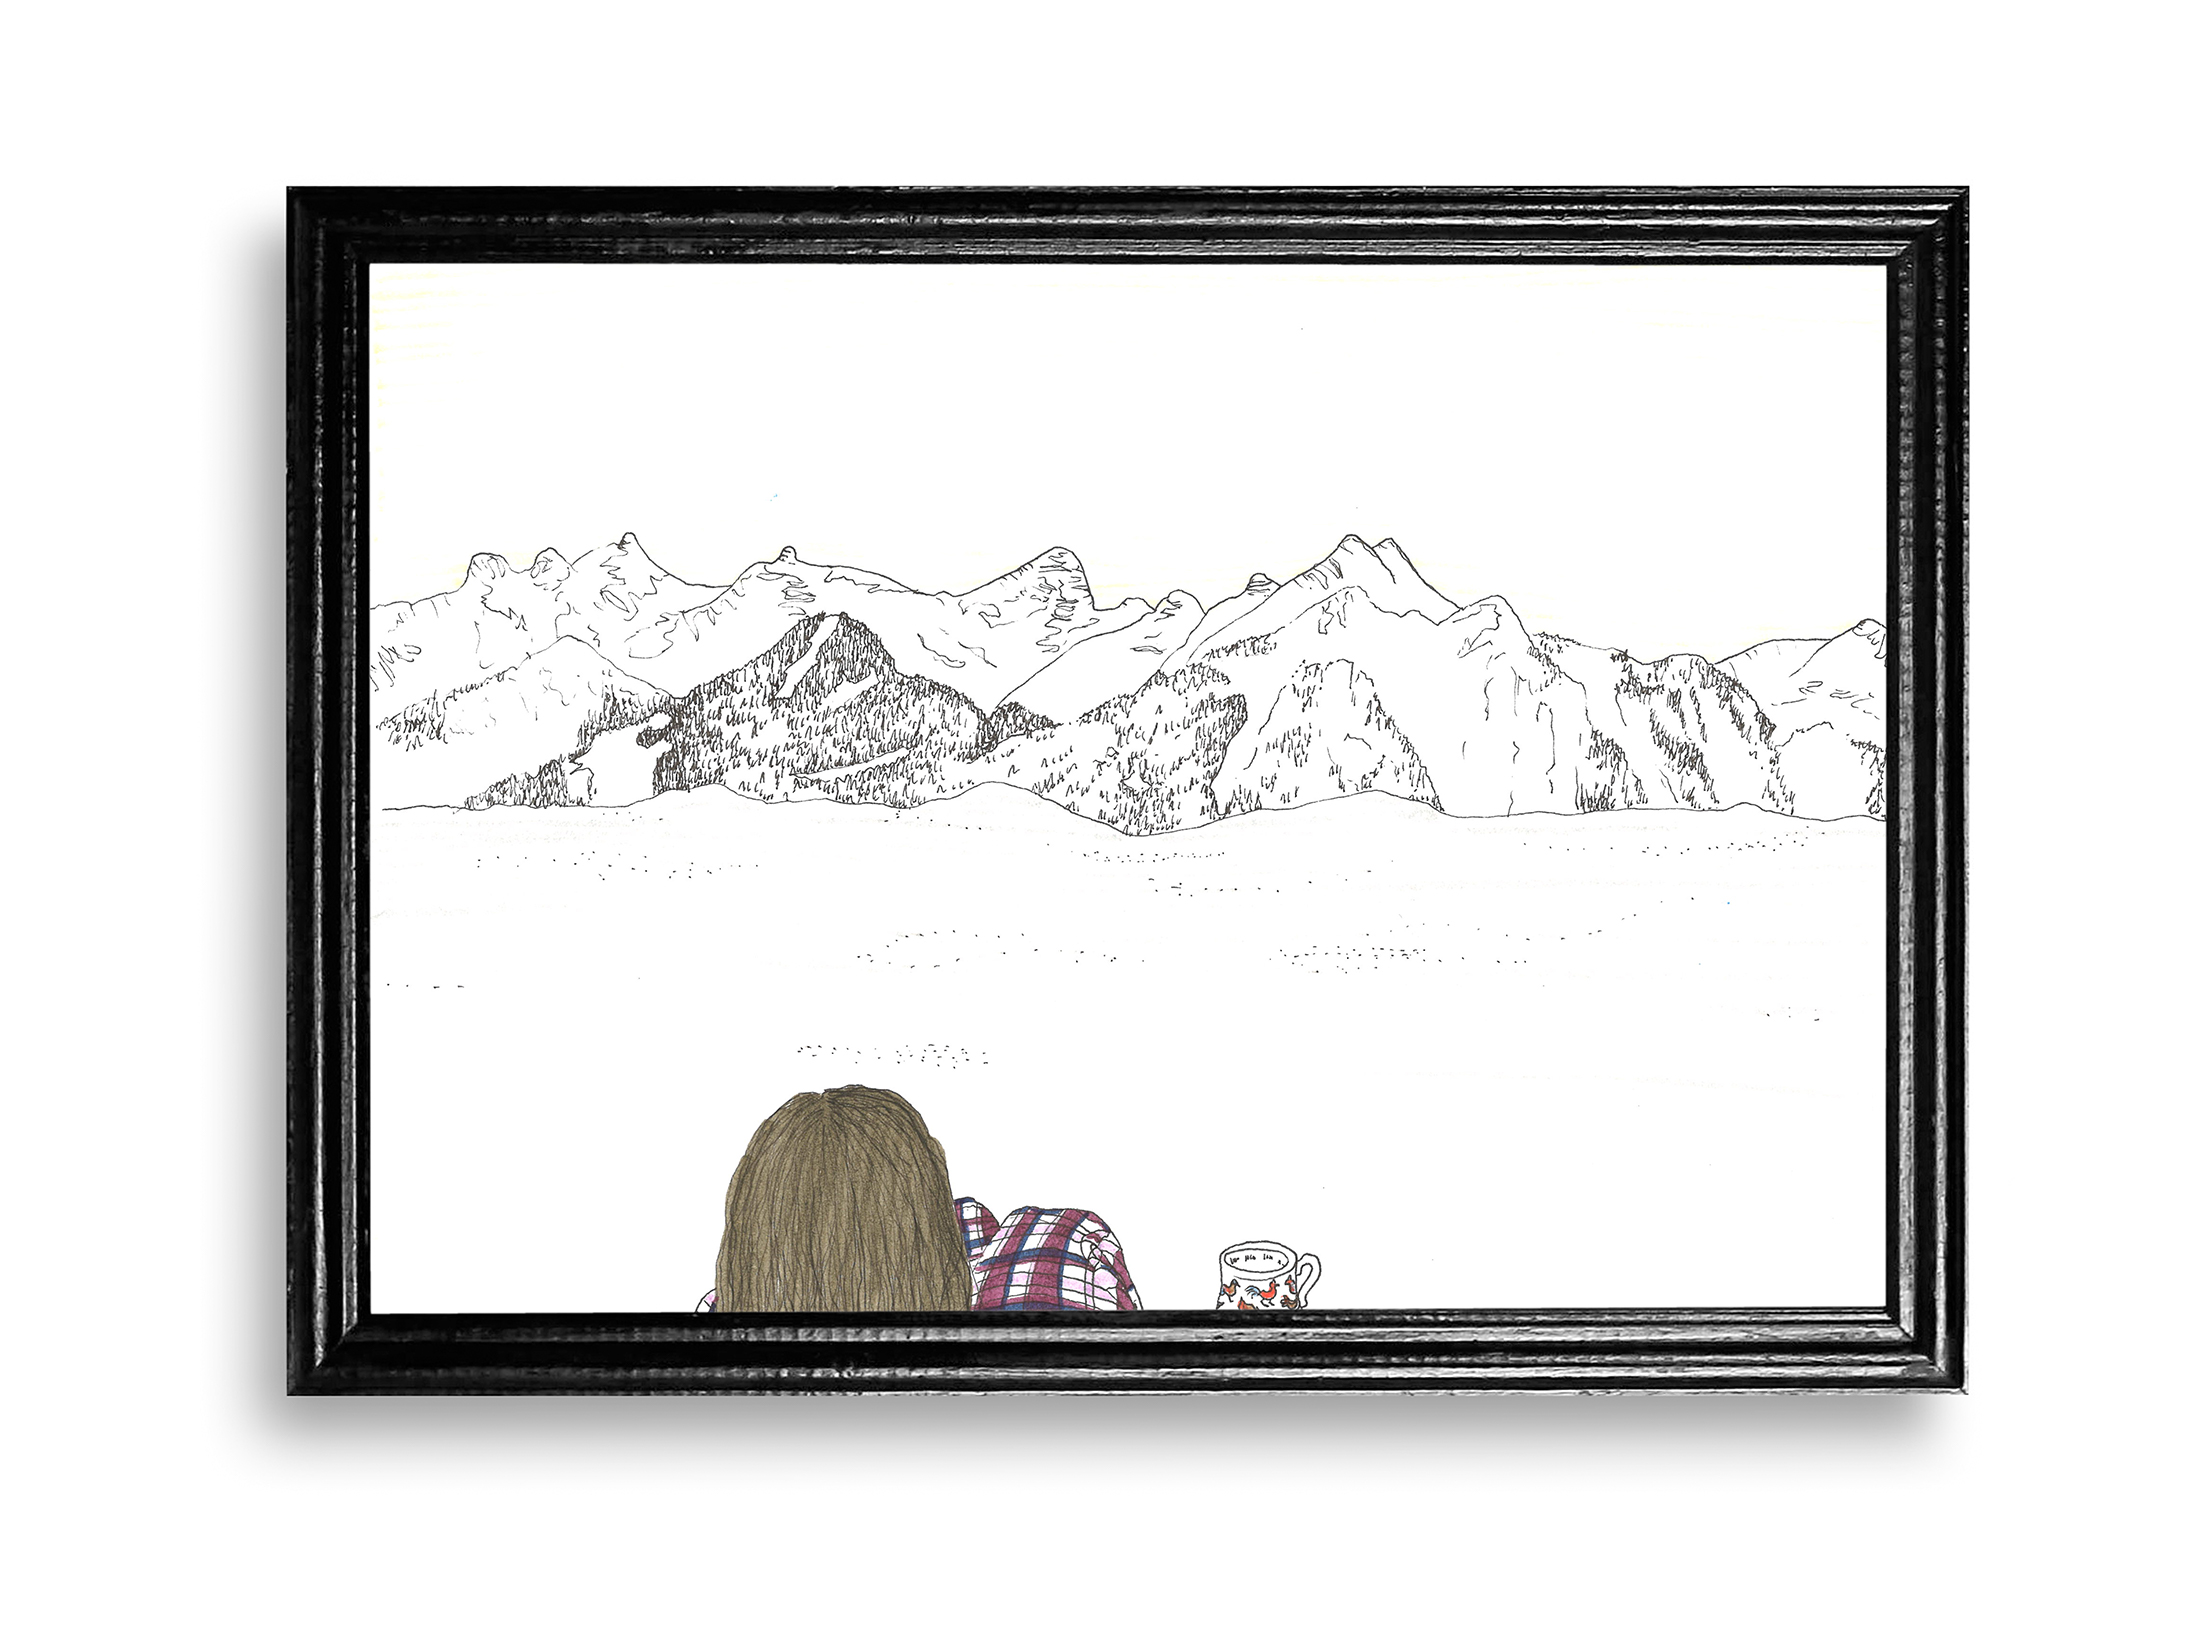 anna stemmer-dworak, illustration art, mountain view, austria, drawing, contemporary art, illustration, unique piece